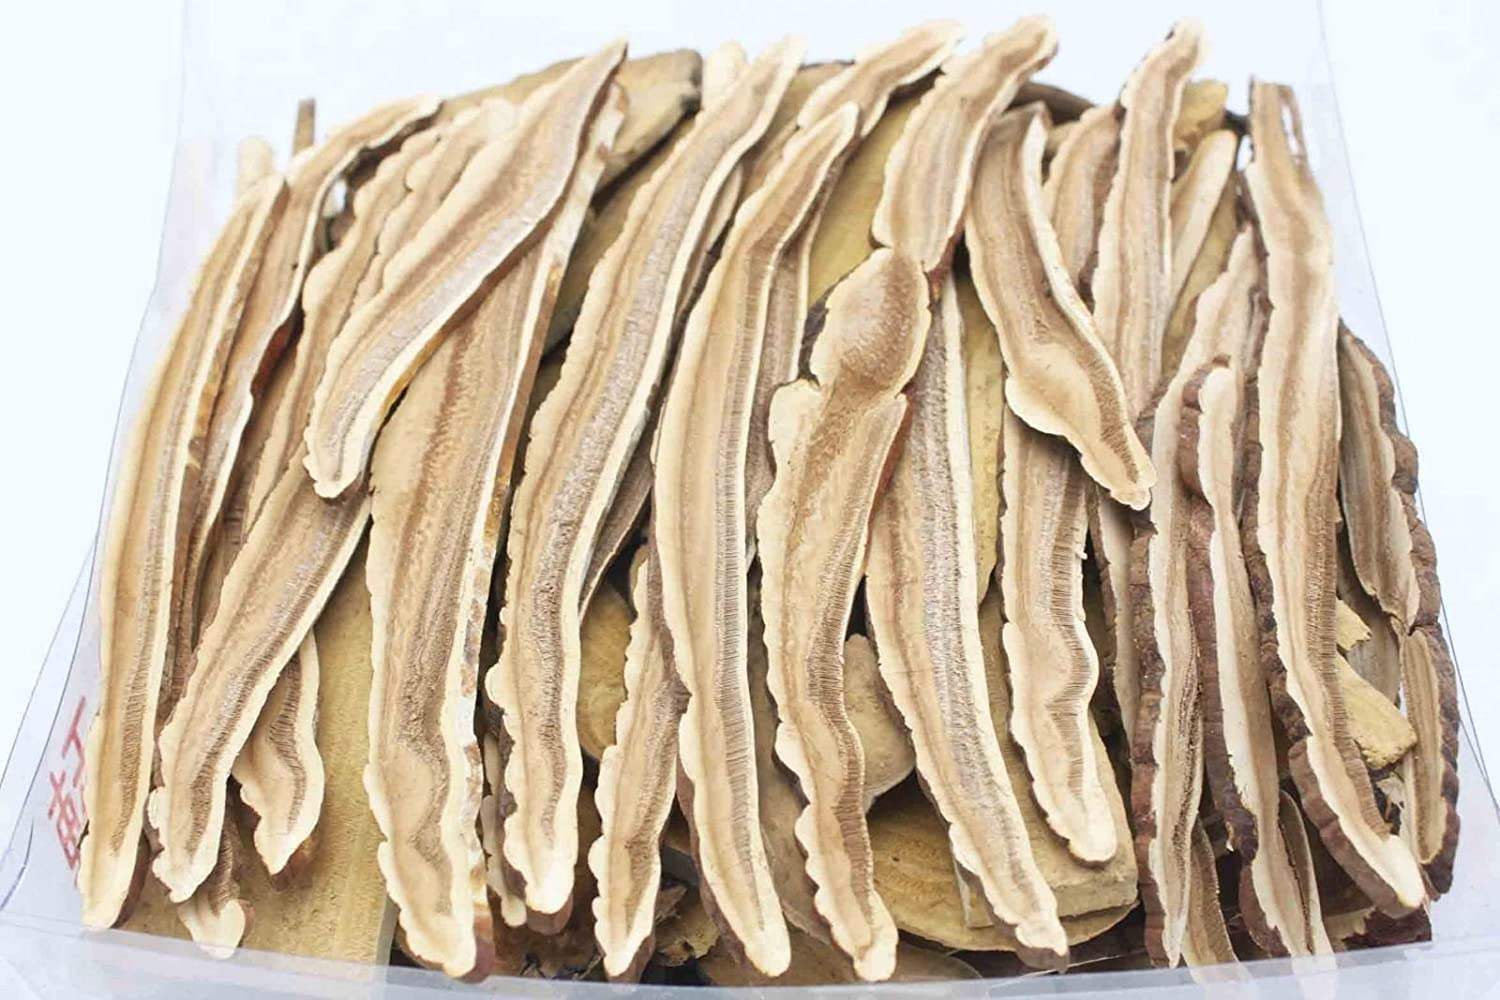 China Good Food Sliced Dried Lingzhi Reishi Mushroom Linh chi 靈芝片 灵芝片 FREE worldwide AirMail